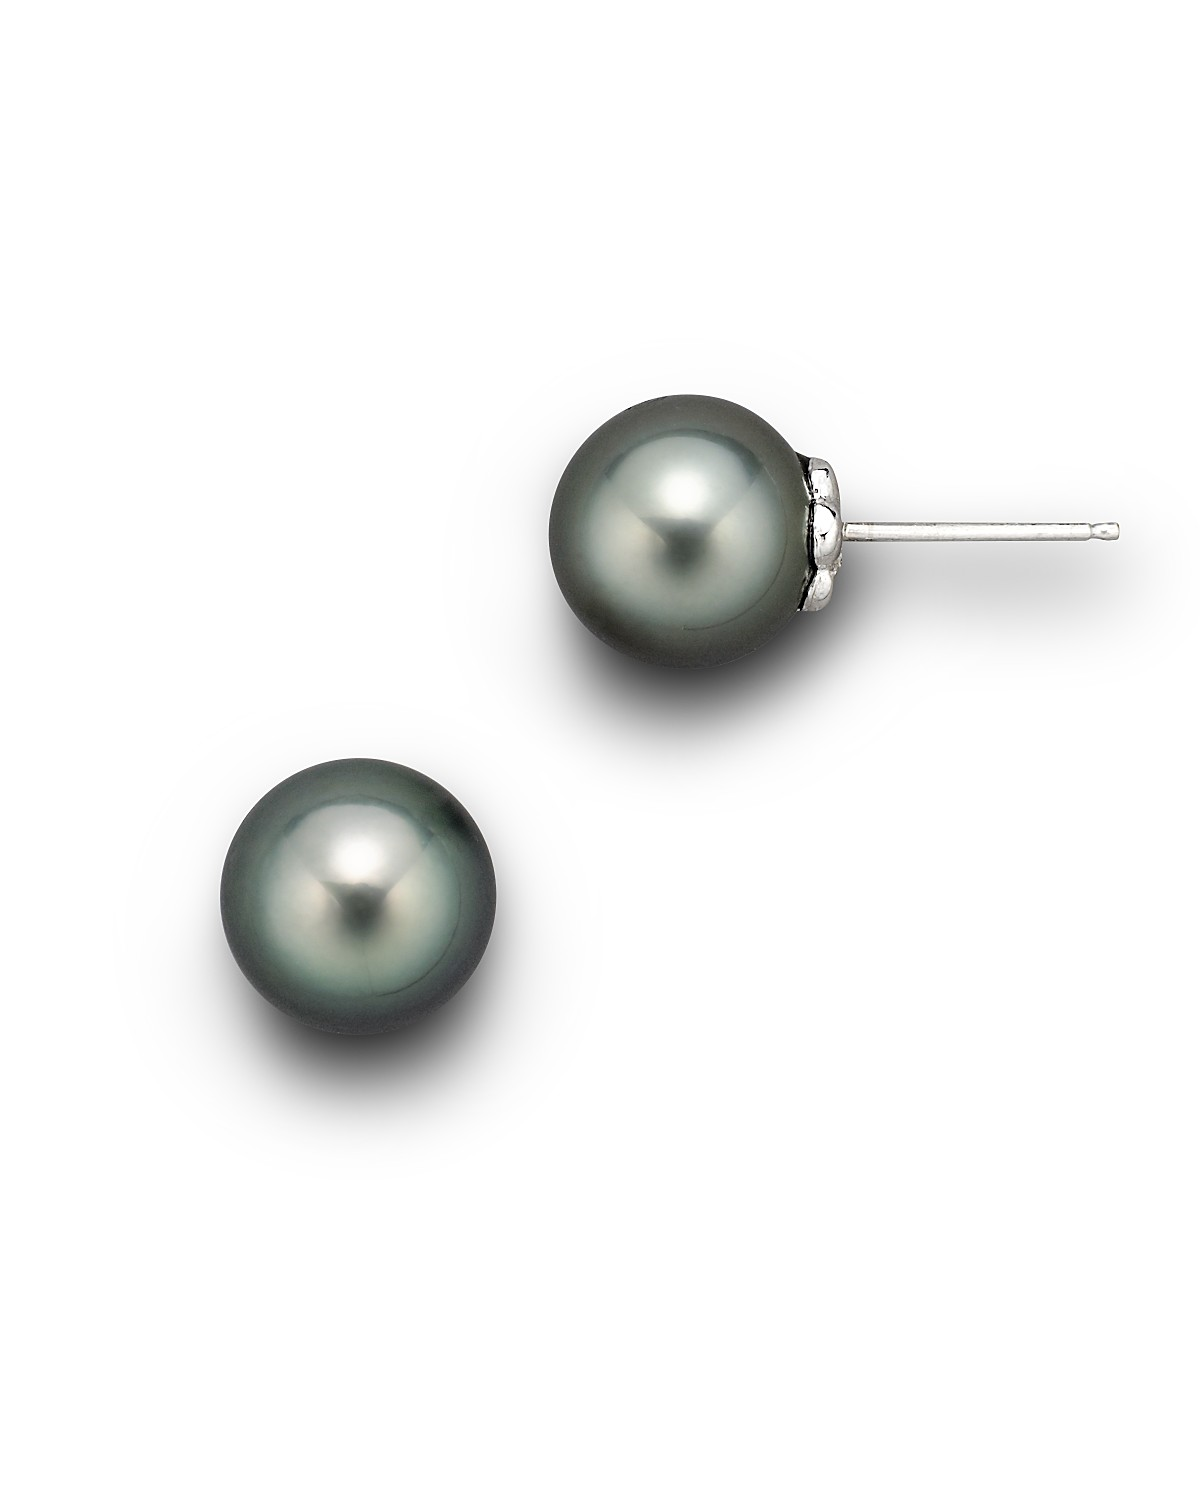 stud product ears for pearl earrings sensitive sensitively